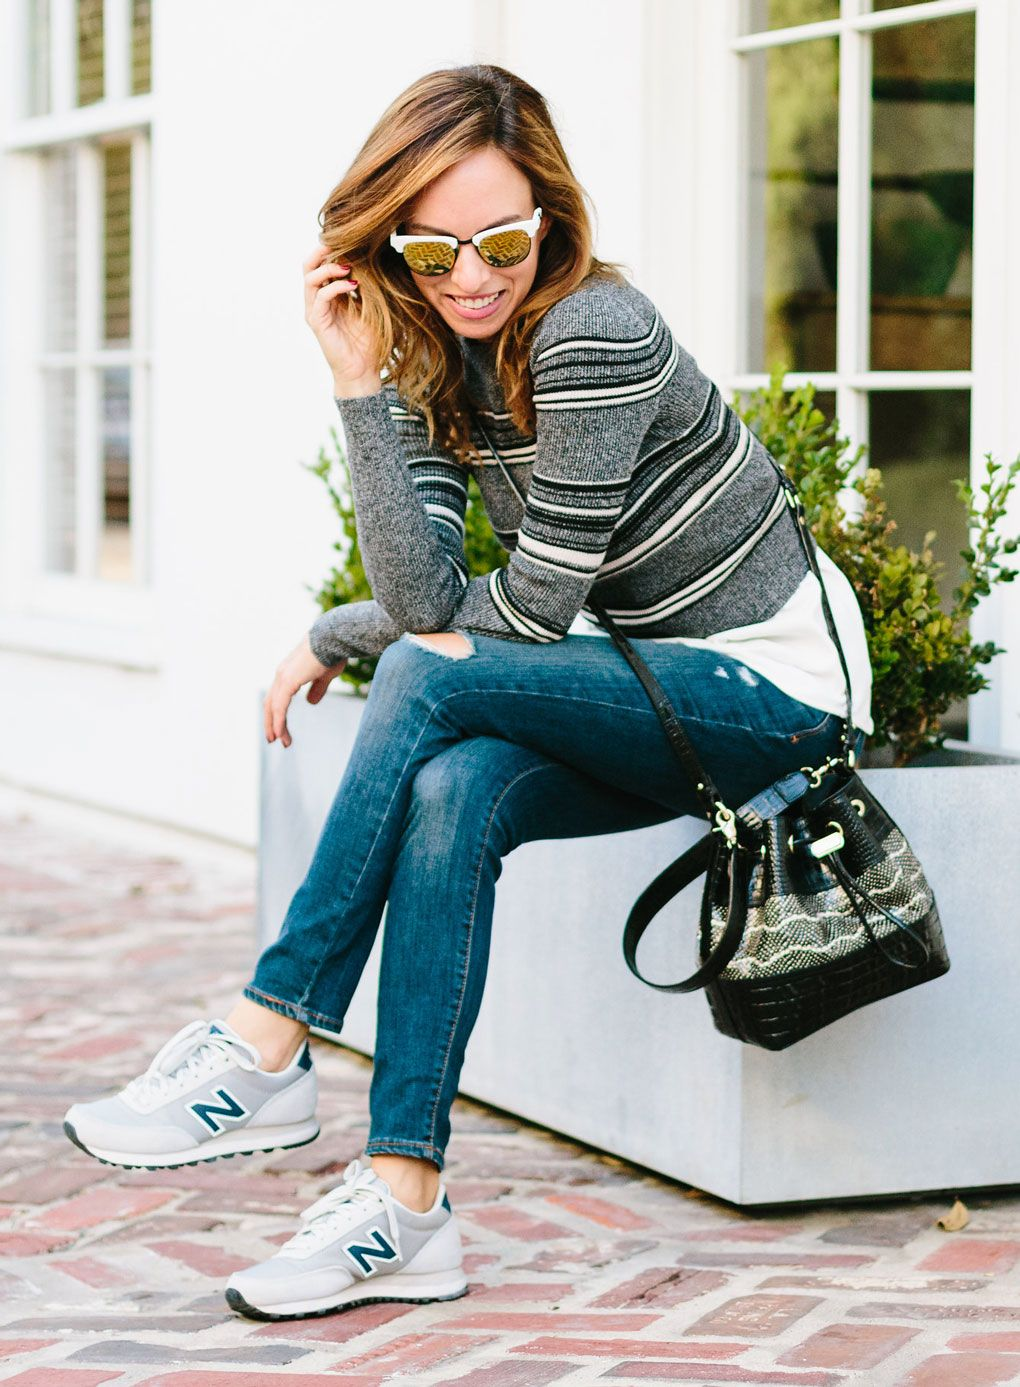 92bc90a4e38 Sydne Style - How to Make Sneakers Look Cute